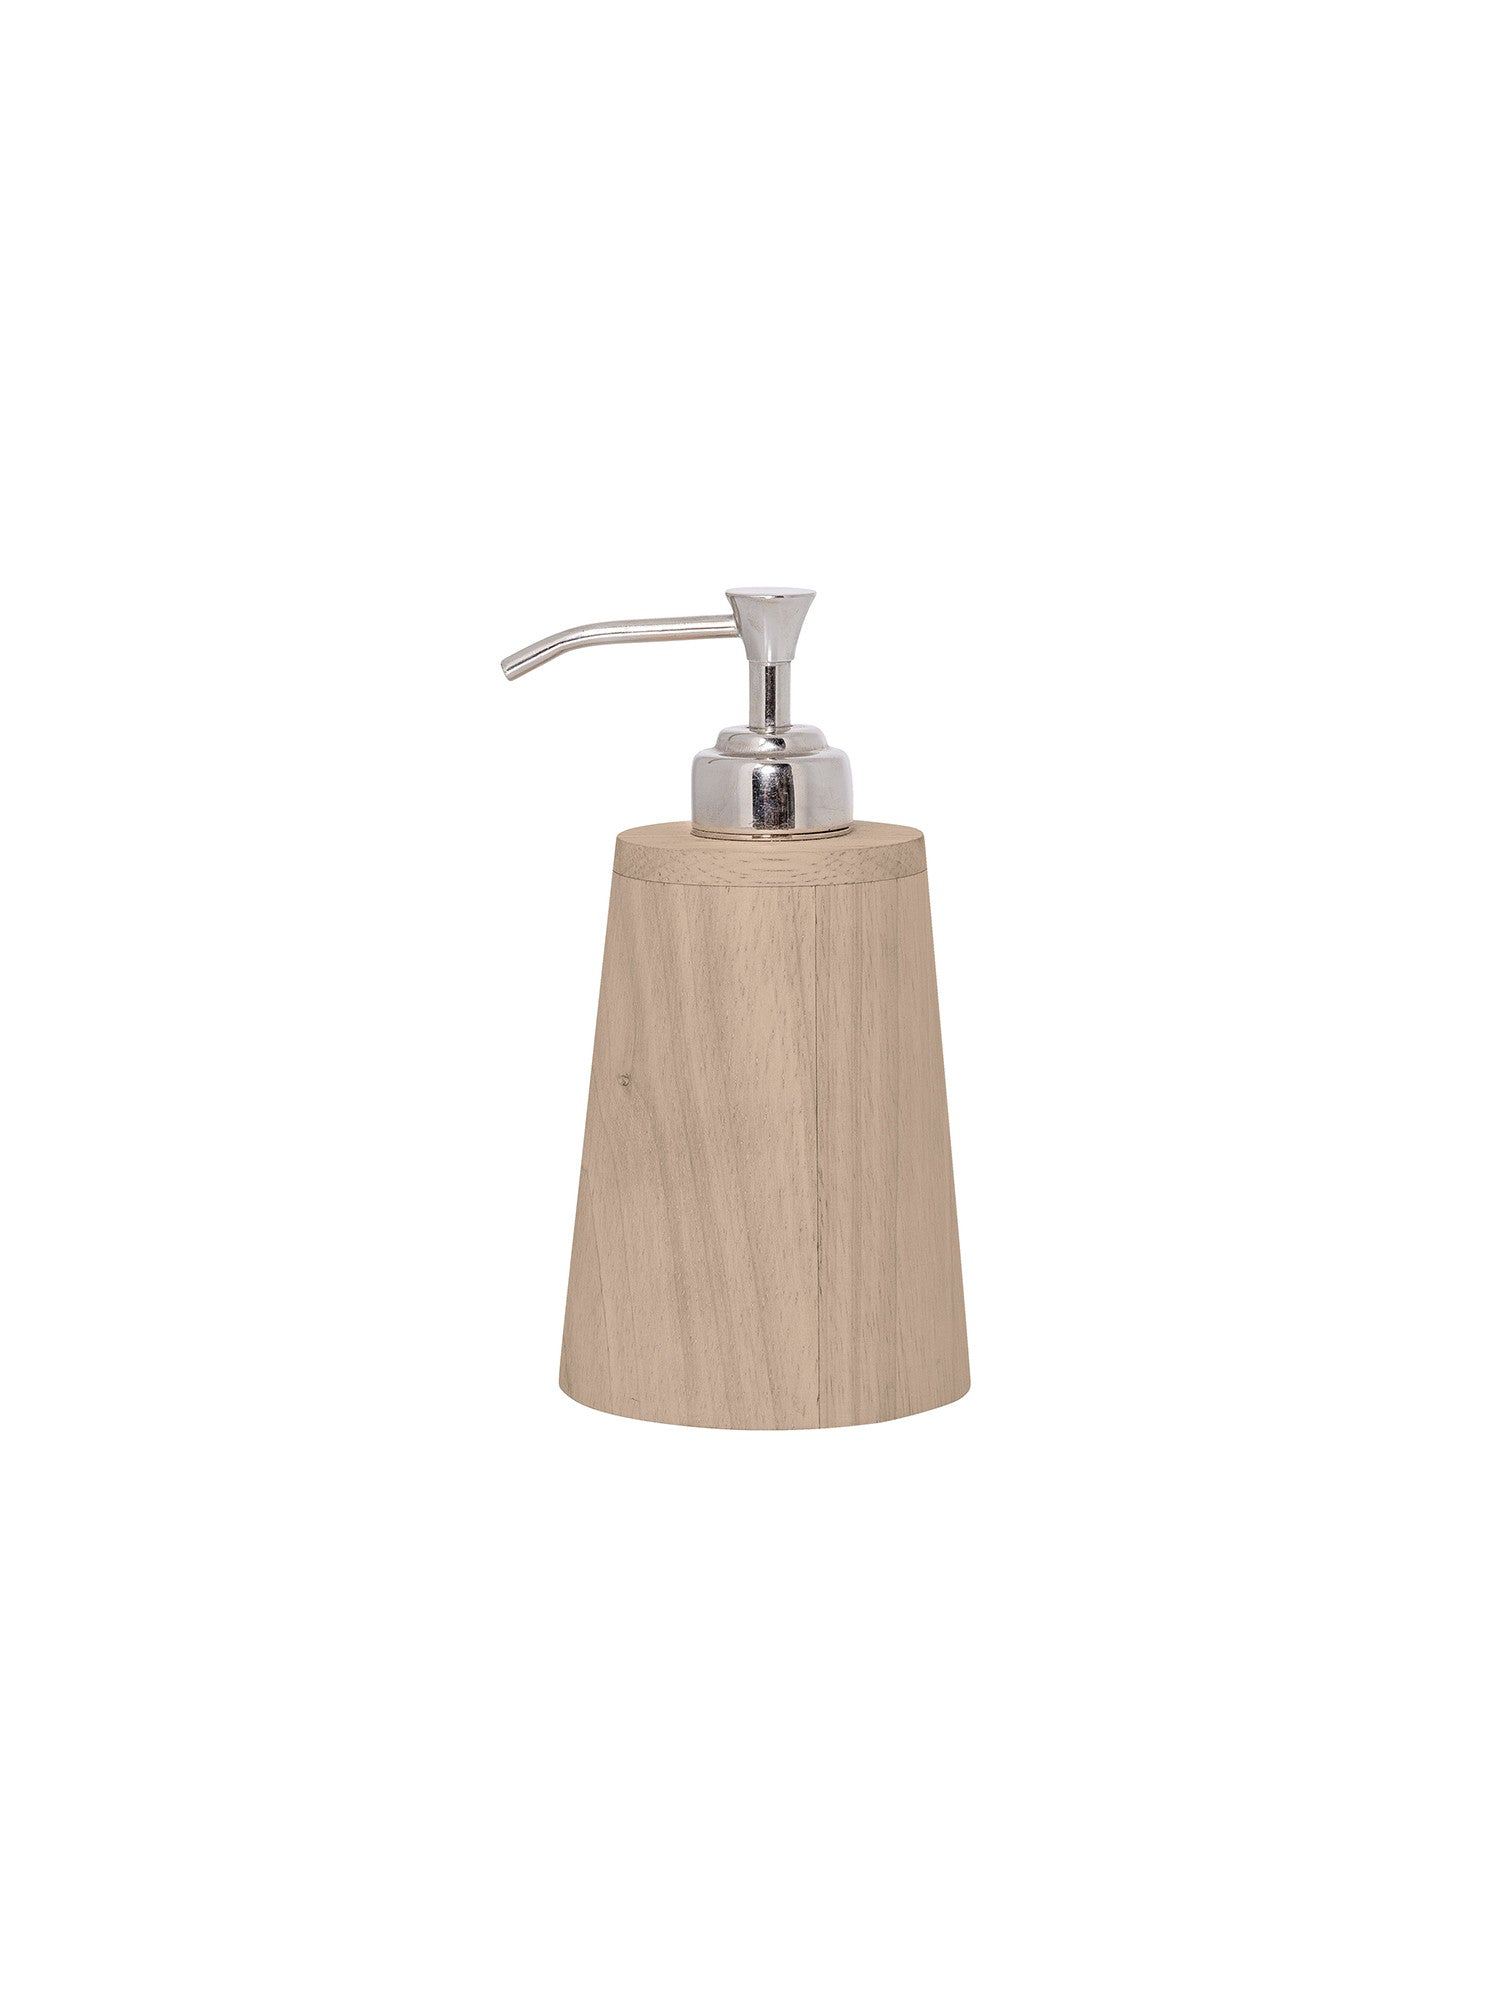 Rubber Wood Soap Dispenser #63104122